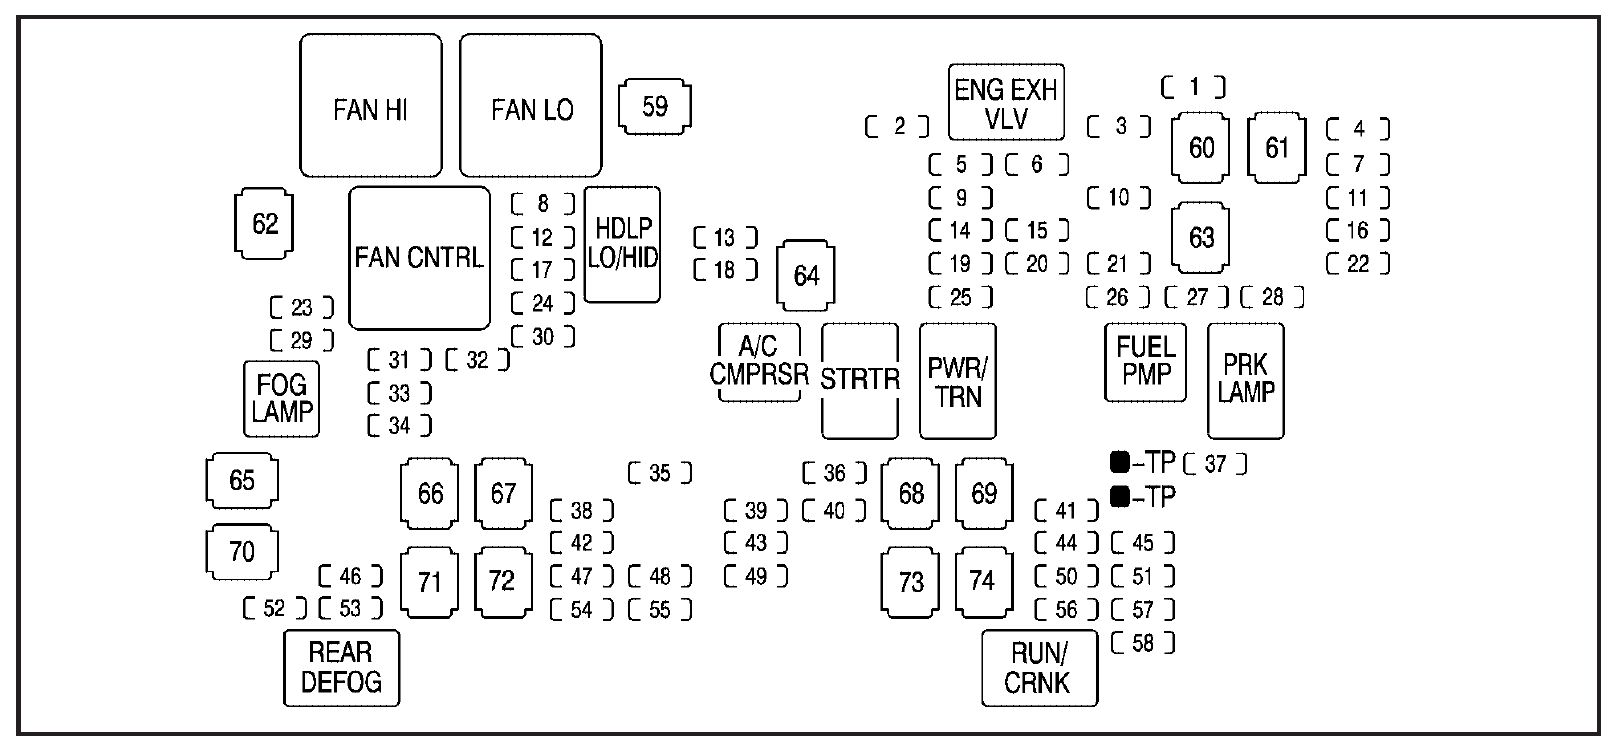 hight resolution of 2008 gmc fuse diagram wiring diagram yer2008 gmc sierra fuse diagram wiring diagram forward 2008 gmc